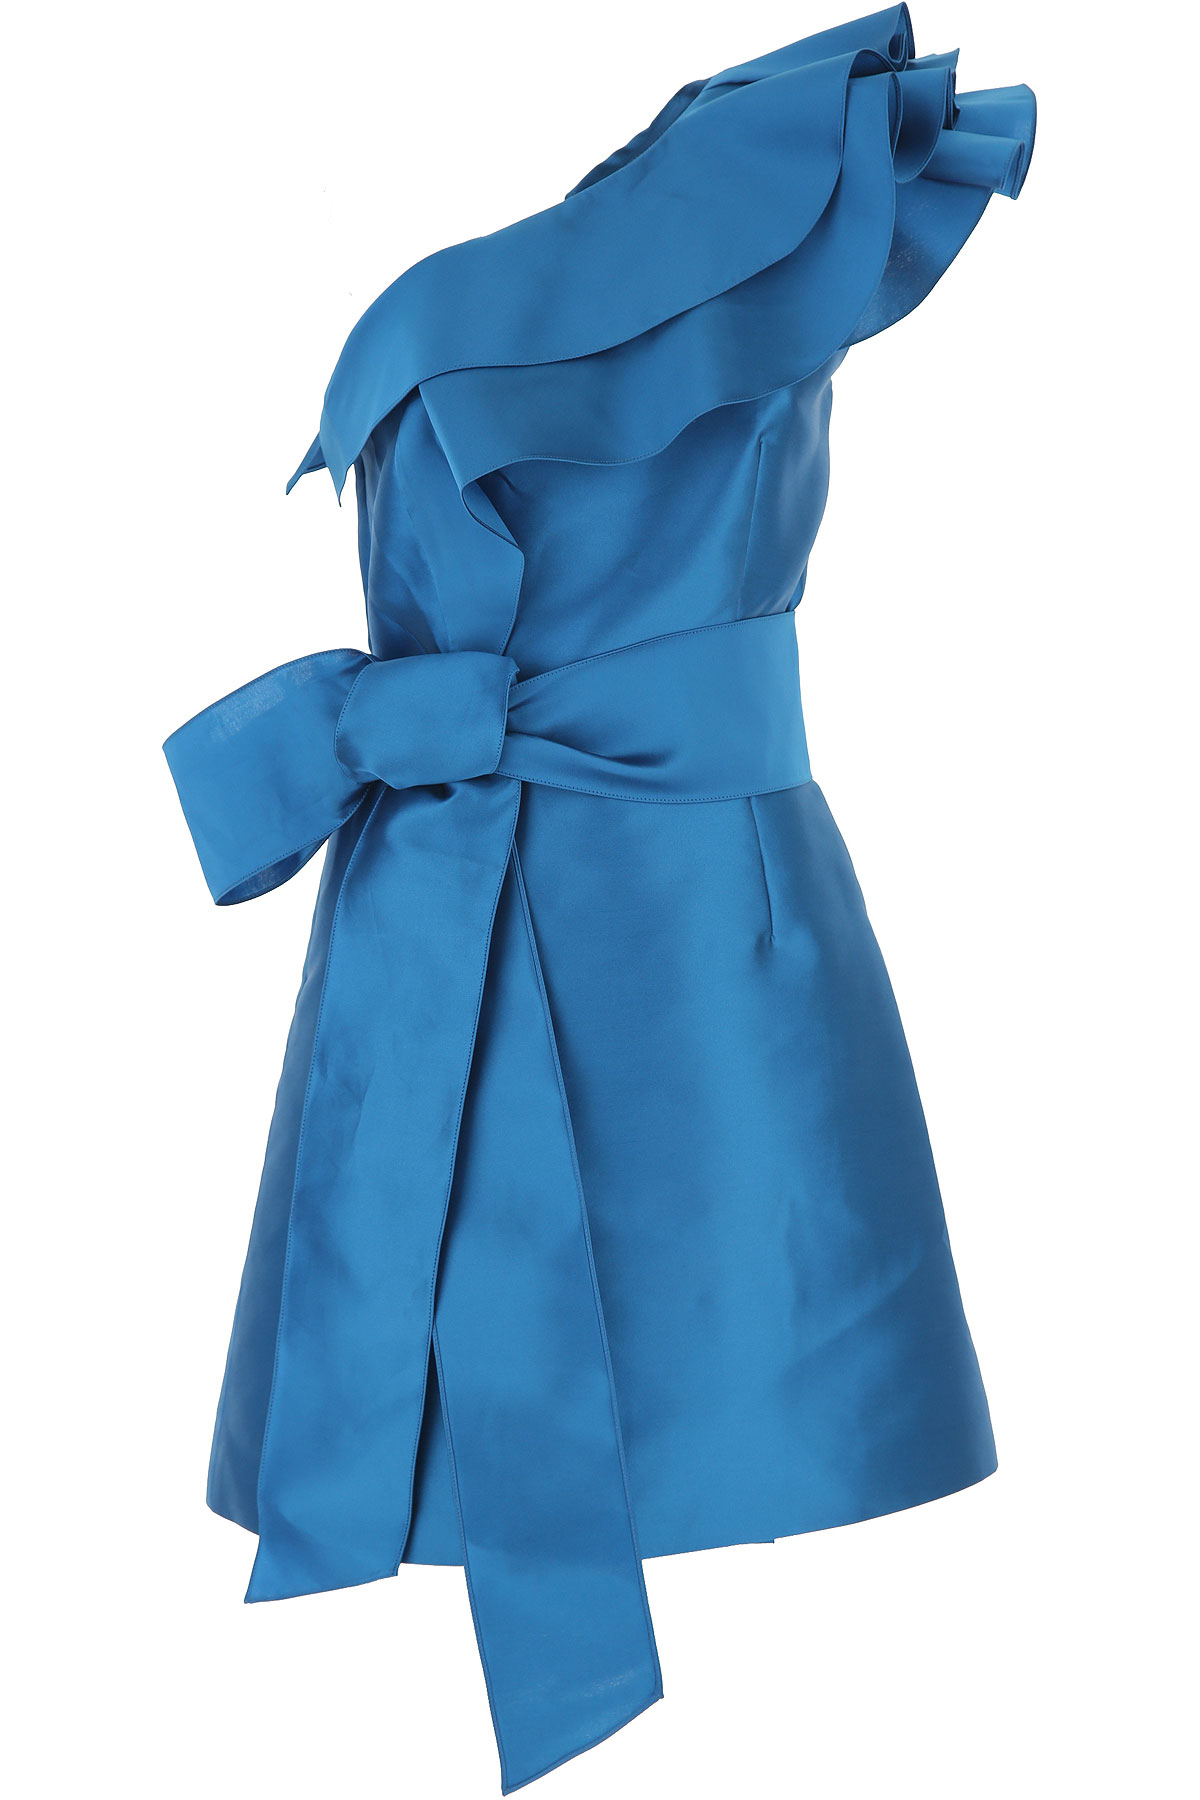 Alberta Ferretti Dress moterims, Evening Cocktail Party, Electric Blue, polyestere, 2019, 40 M